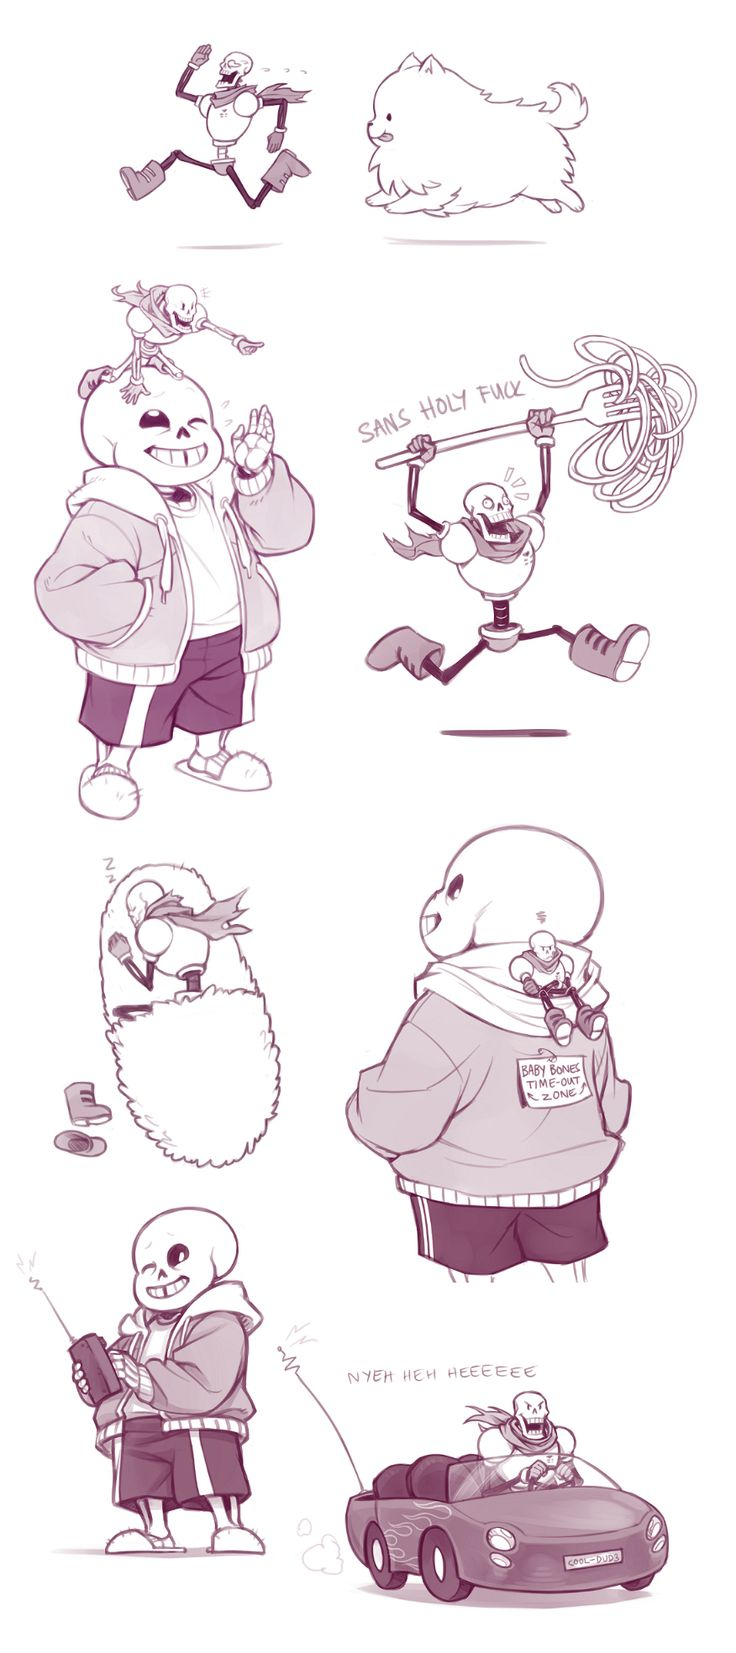 Boss Baby Last Scene 445 Best Images About Skelebros On Pinterest Undertale